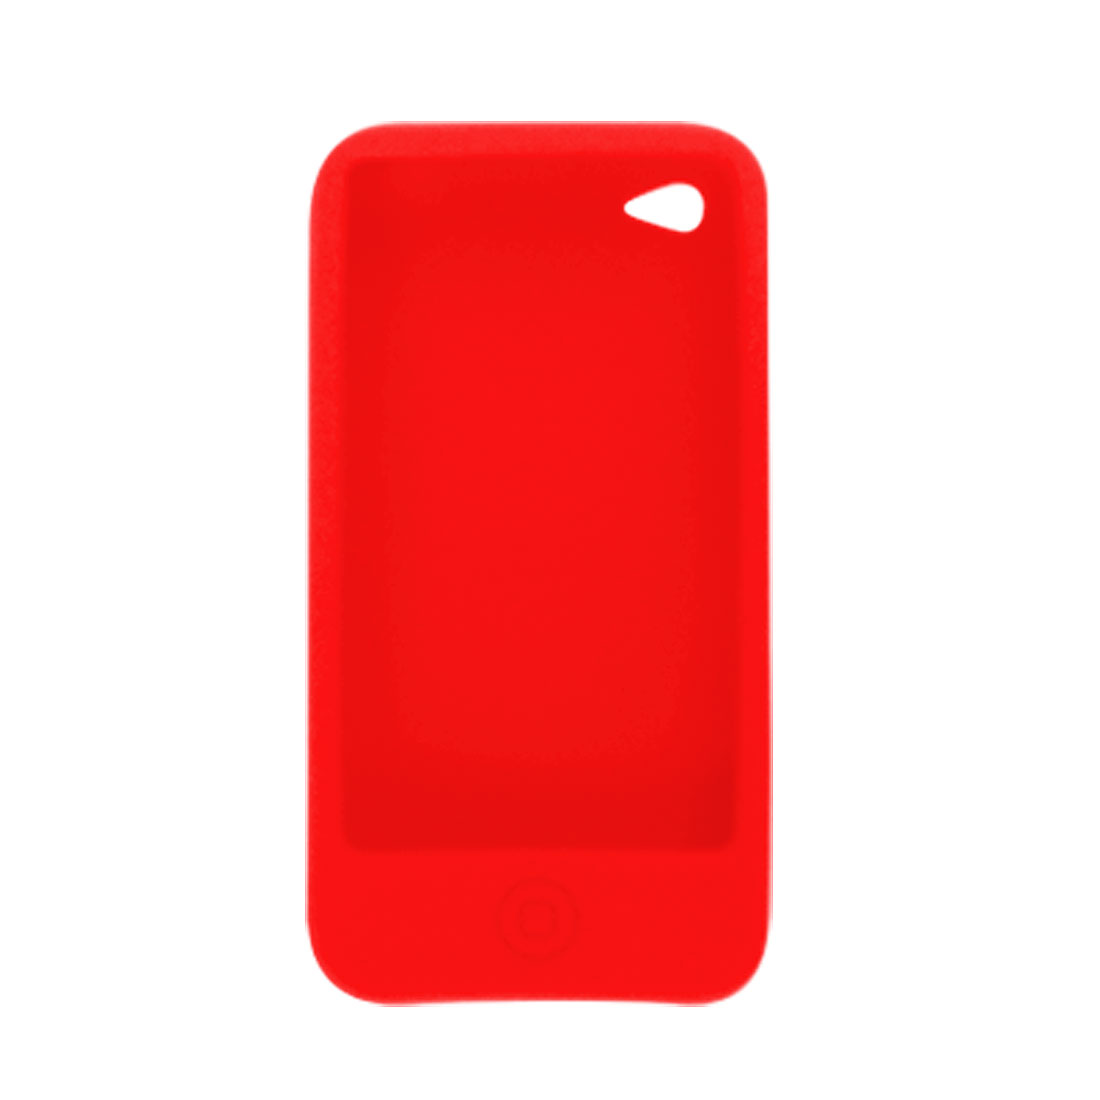 Red Soft Silicone Press Button Case Cover + Screen Guard for iPhone 4 4G